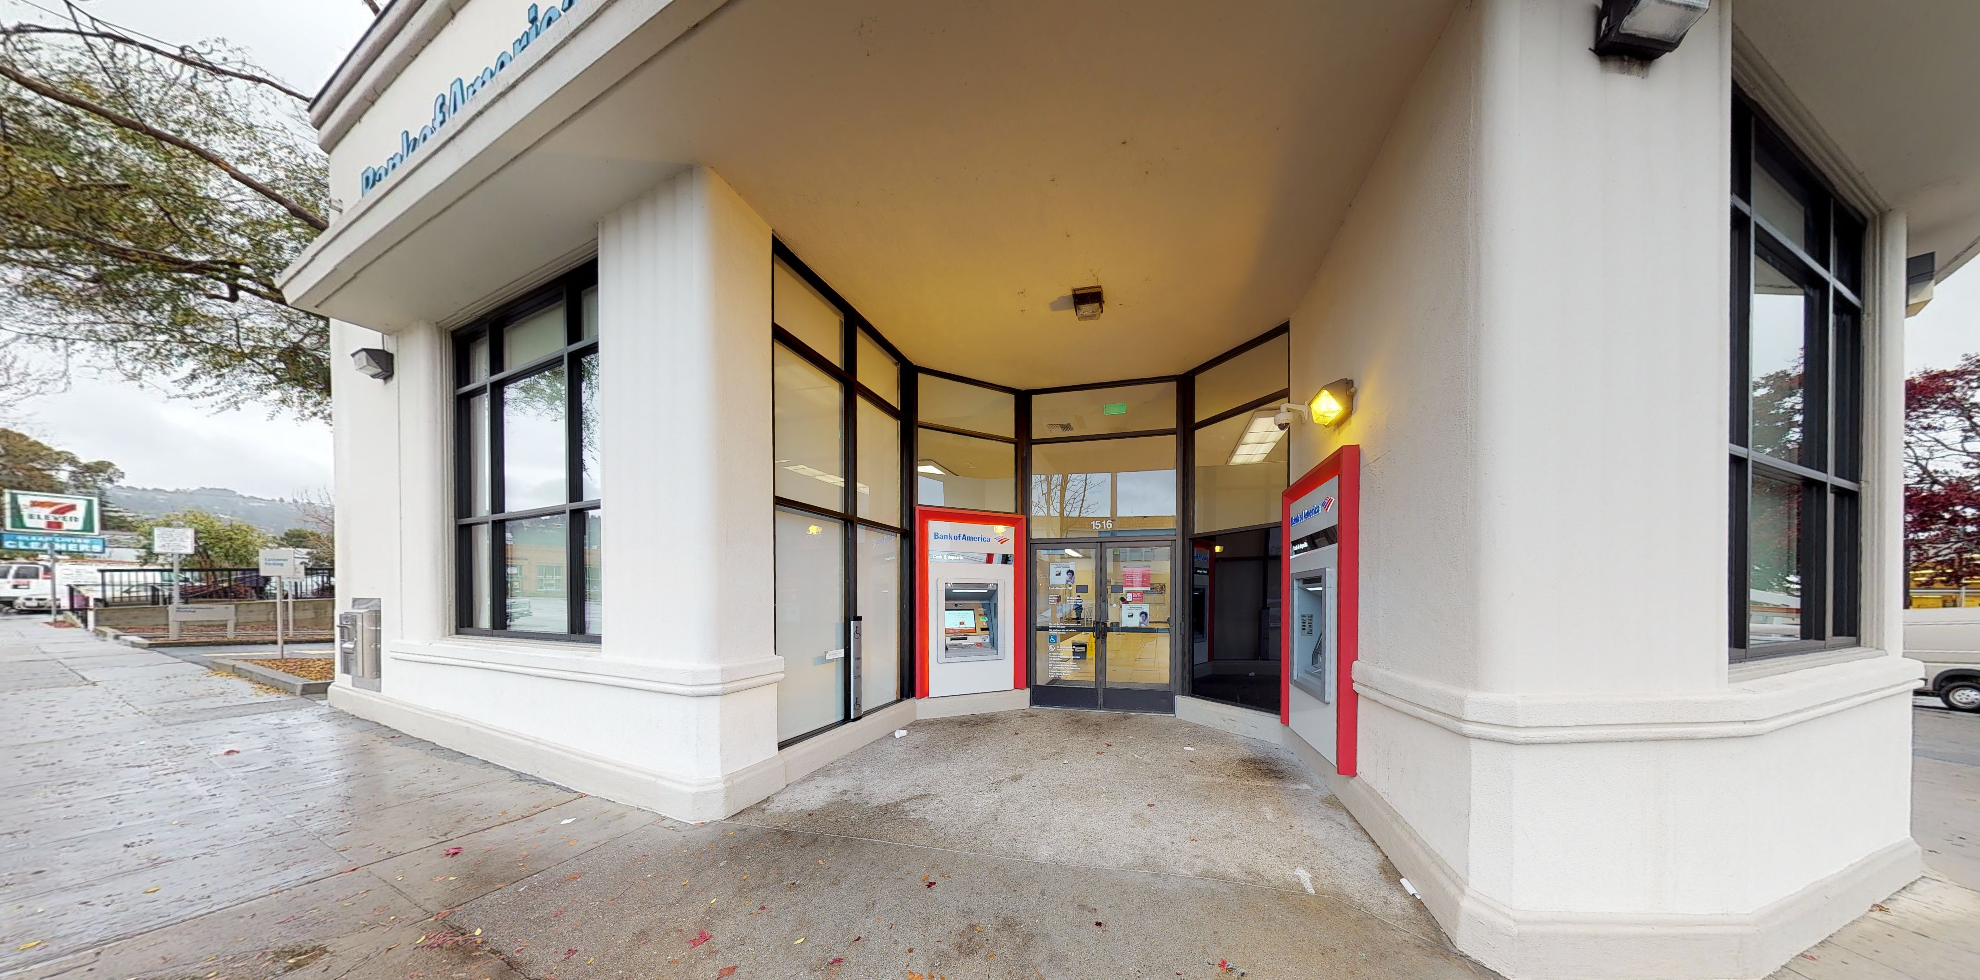 Bank of America financial center with walk-up ATM | 1516 Solano Ave, Albany, CA 94707